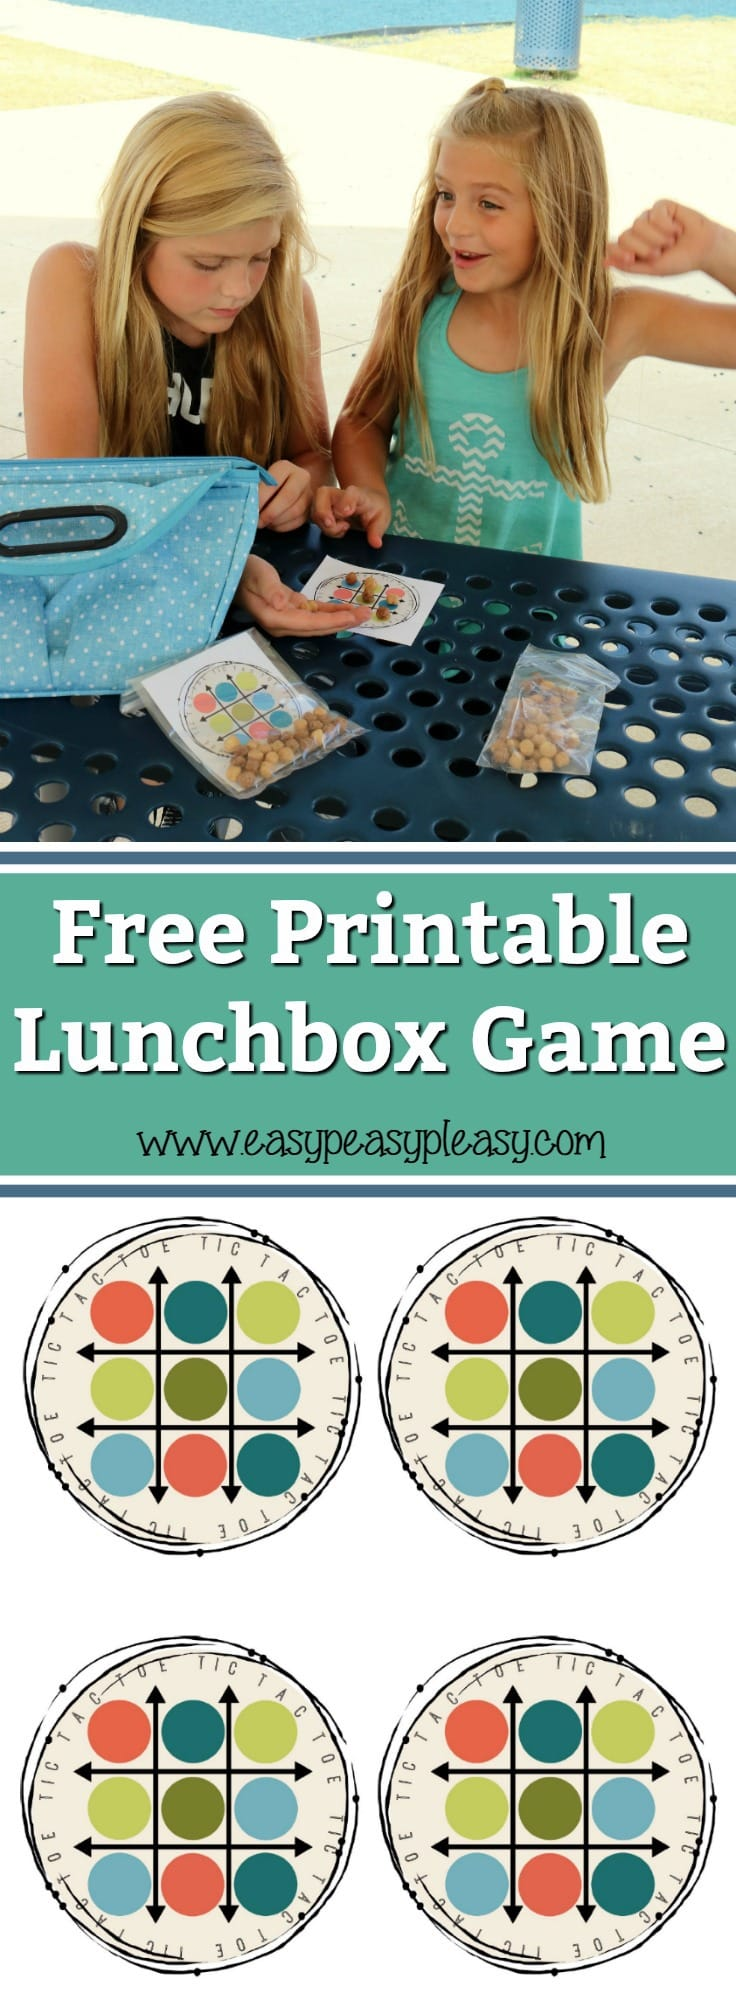 Grab this free printable lunchbox game and surprise your kids with with a special snack and activity at lunch! Perfect for road trips, after school snacks, and keeping them occupied through a meeting.